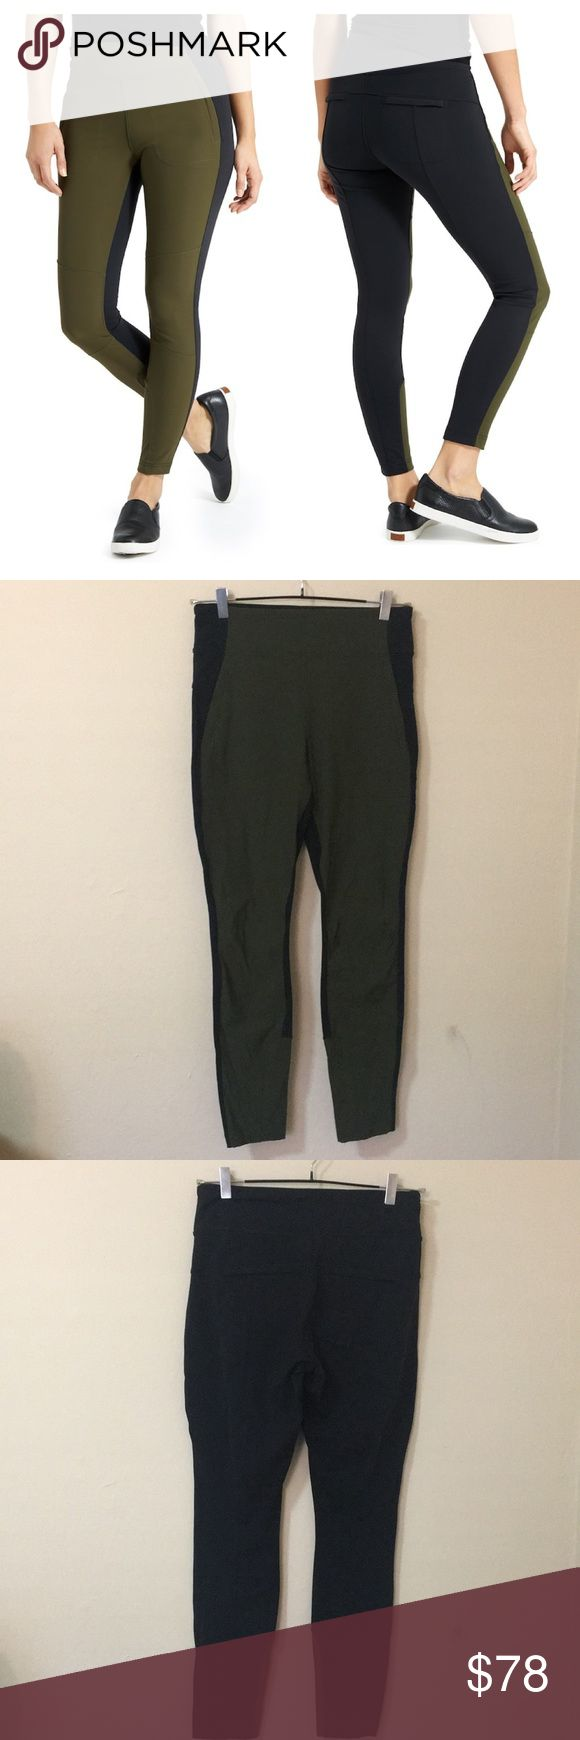 """like new! athleta ankle legging tights Very comfortable and trendy! Can wear without having to cover butt like most leggings! Worn once. Size 8 Regular (not Petite). Color Green and Black. zipper pockets at front and back. High rise. 27.5"""" inseam. 11"""" rise and 38"""" length. Athleta Pants Leggings"""